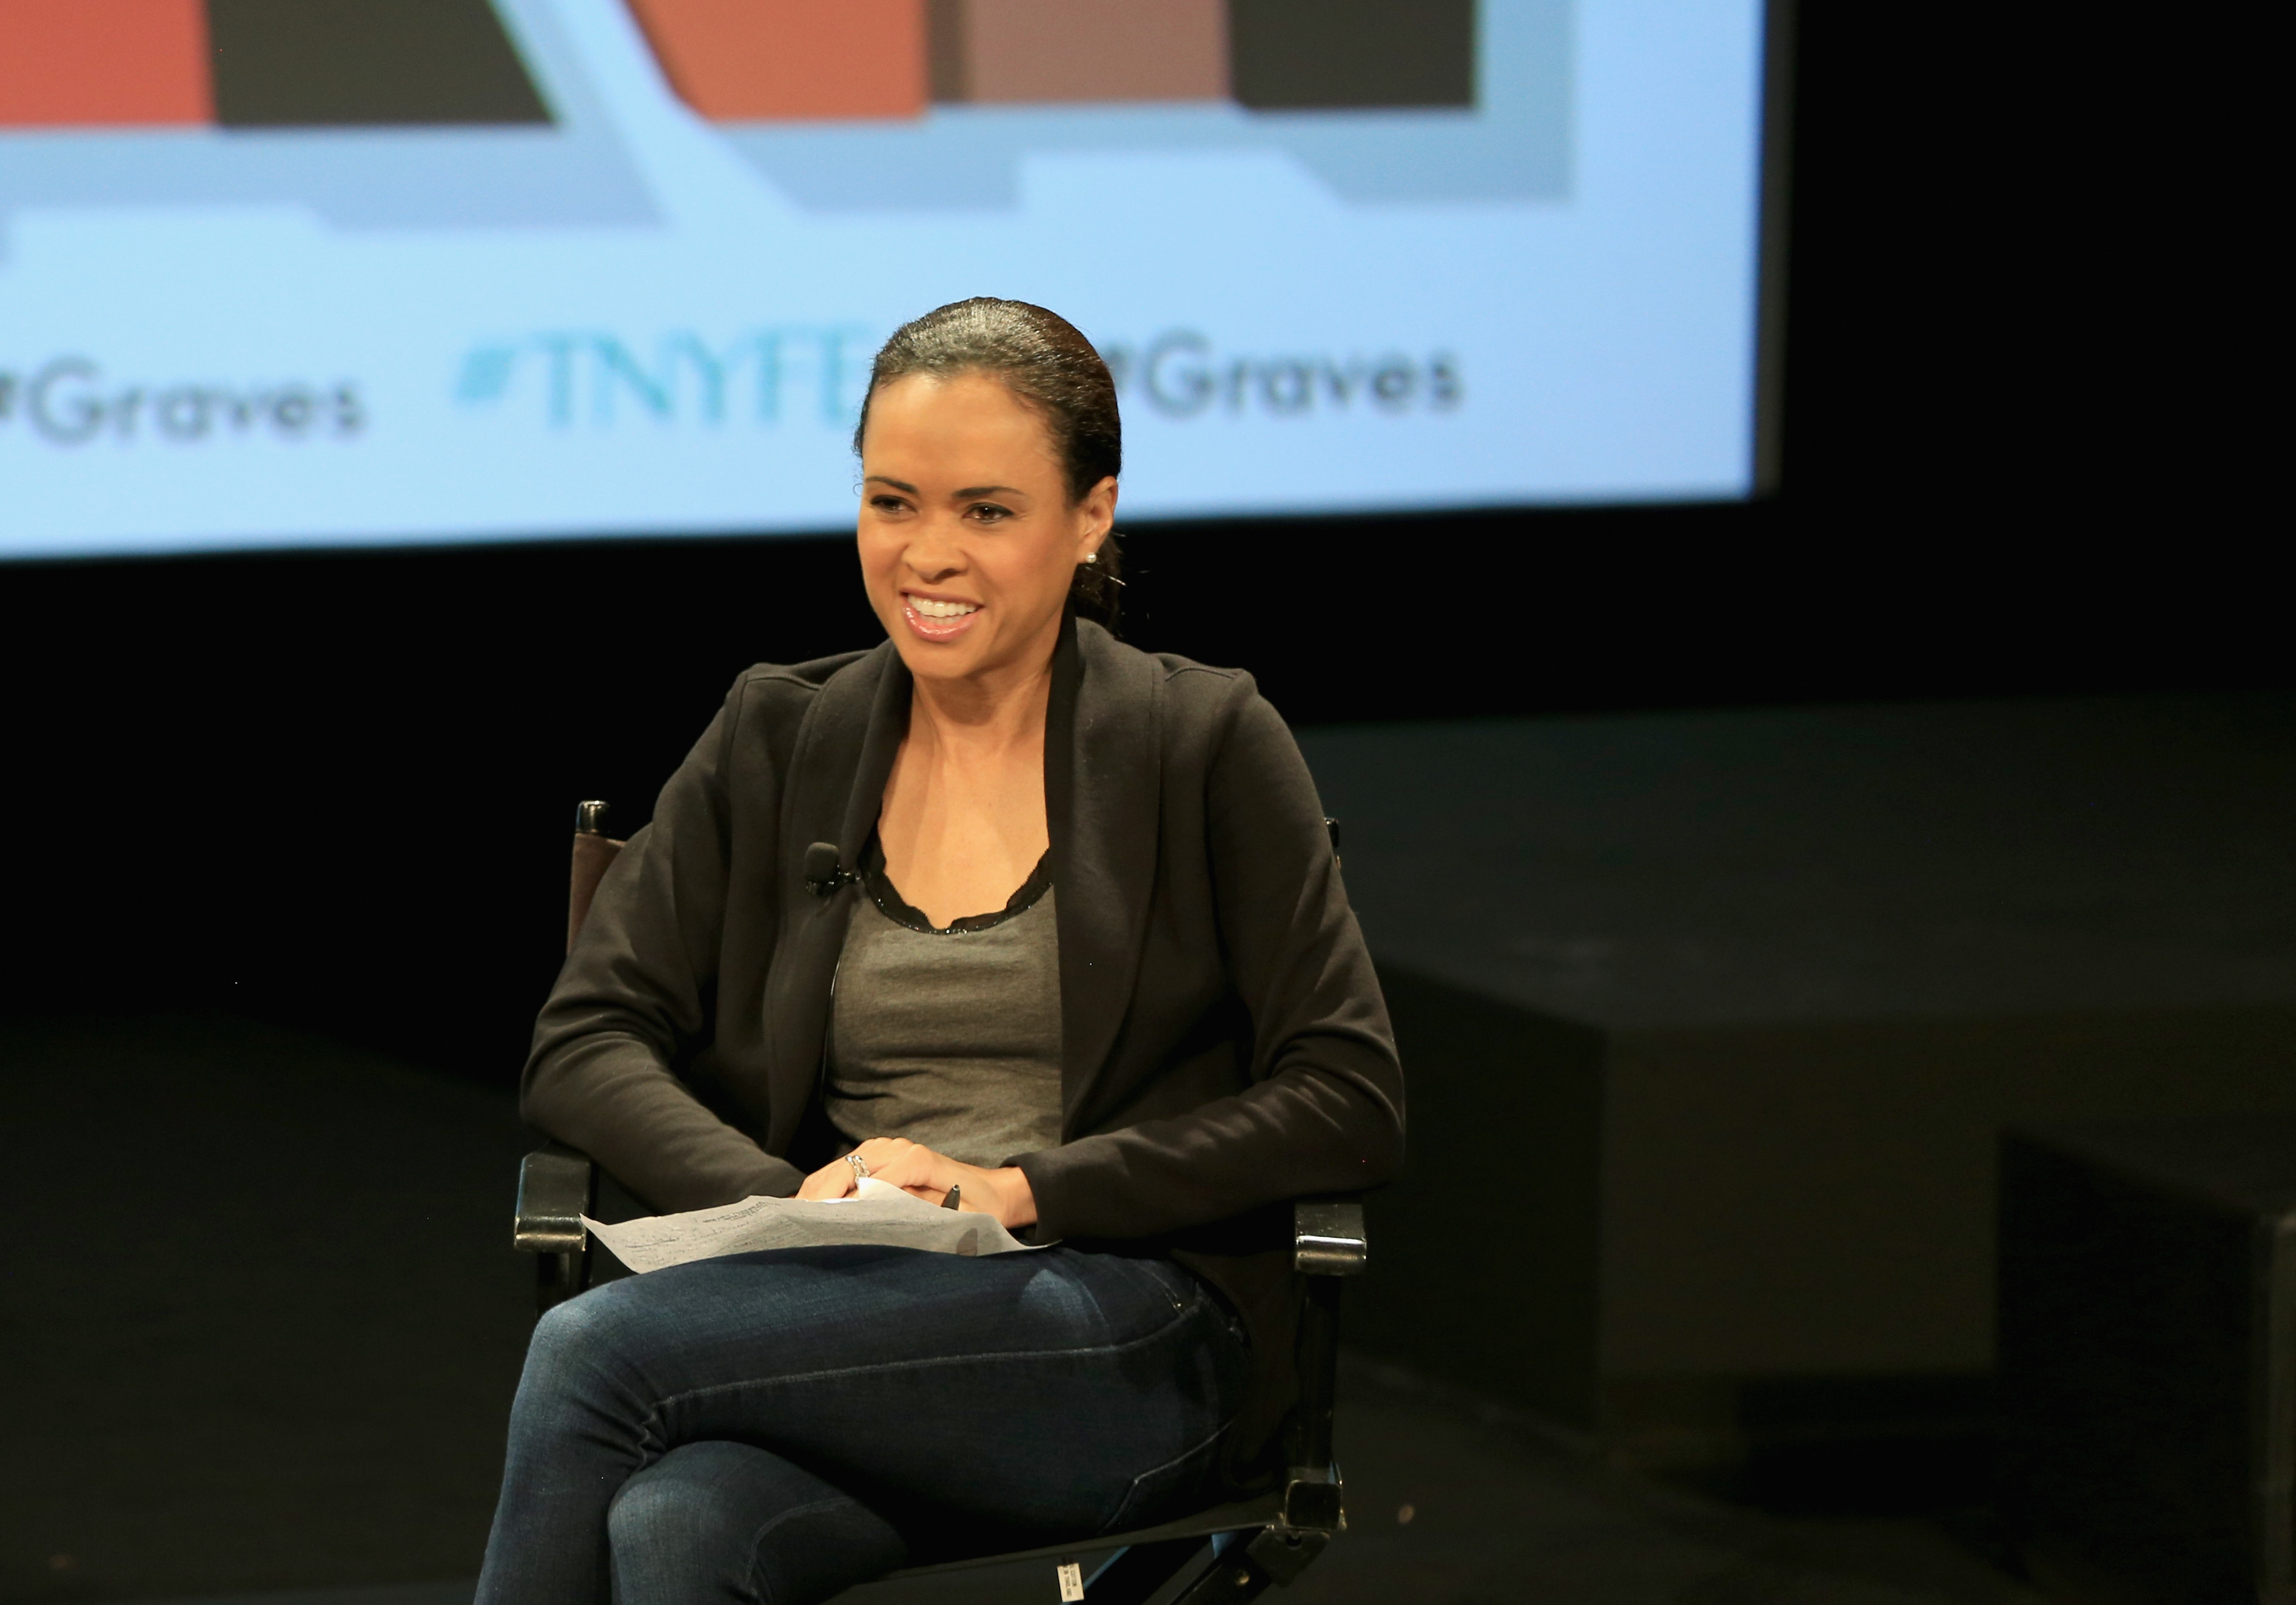 The New Yorker Festival 2016 - Exclusive Screening: EPIX Original Series 'Graves' - Presented By EPIX